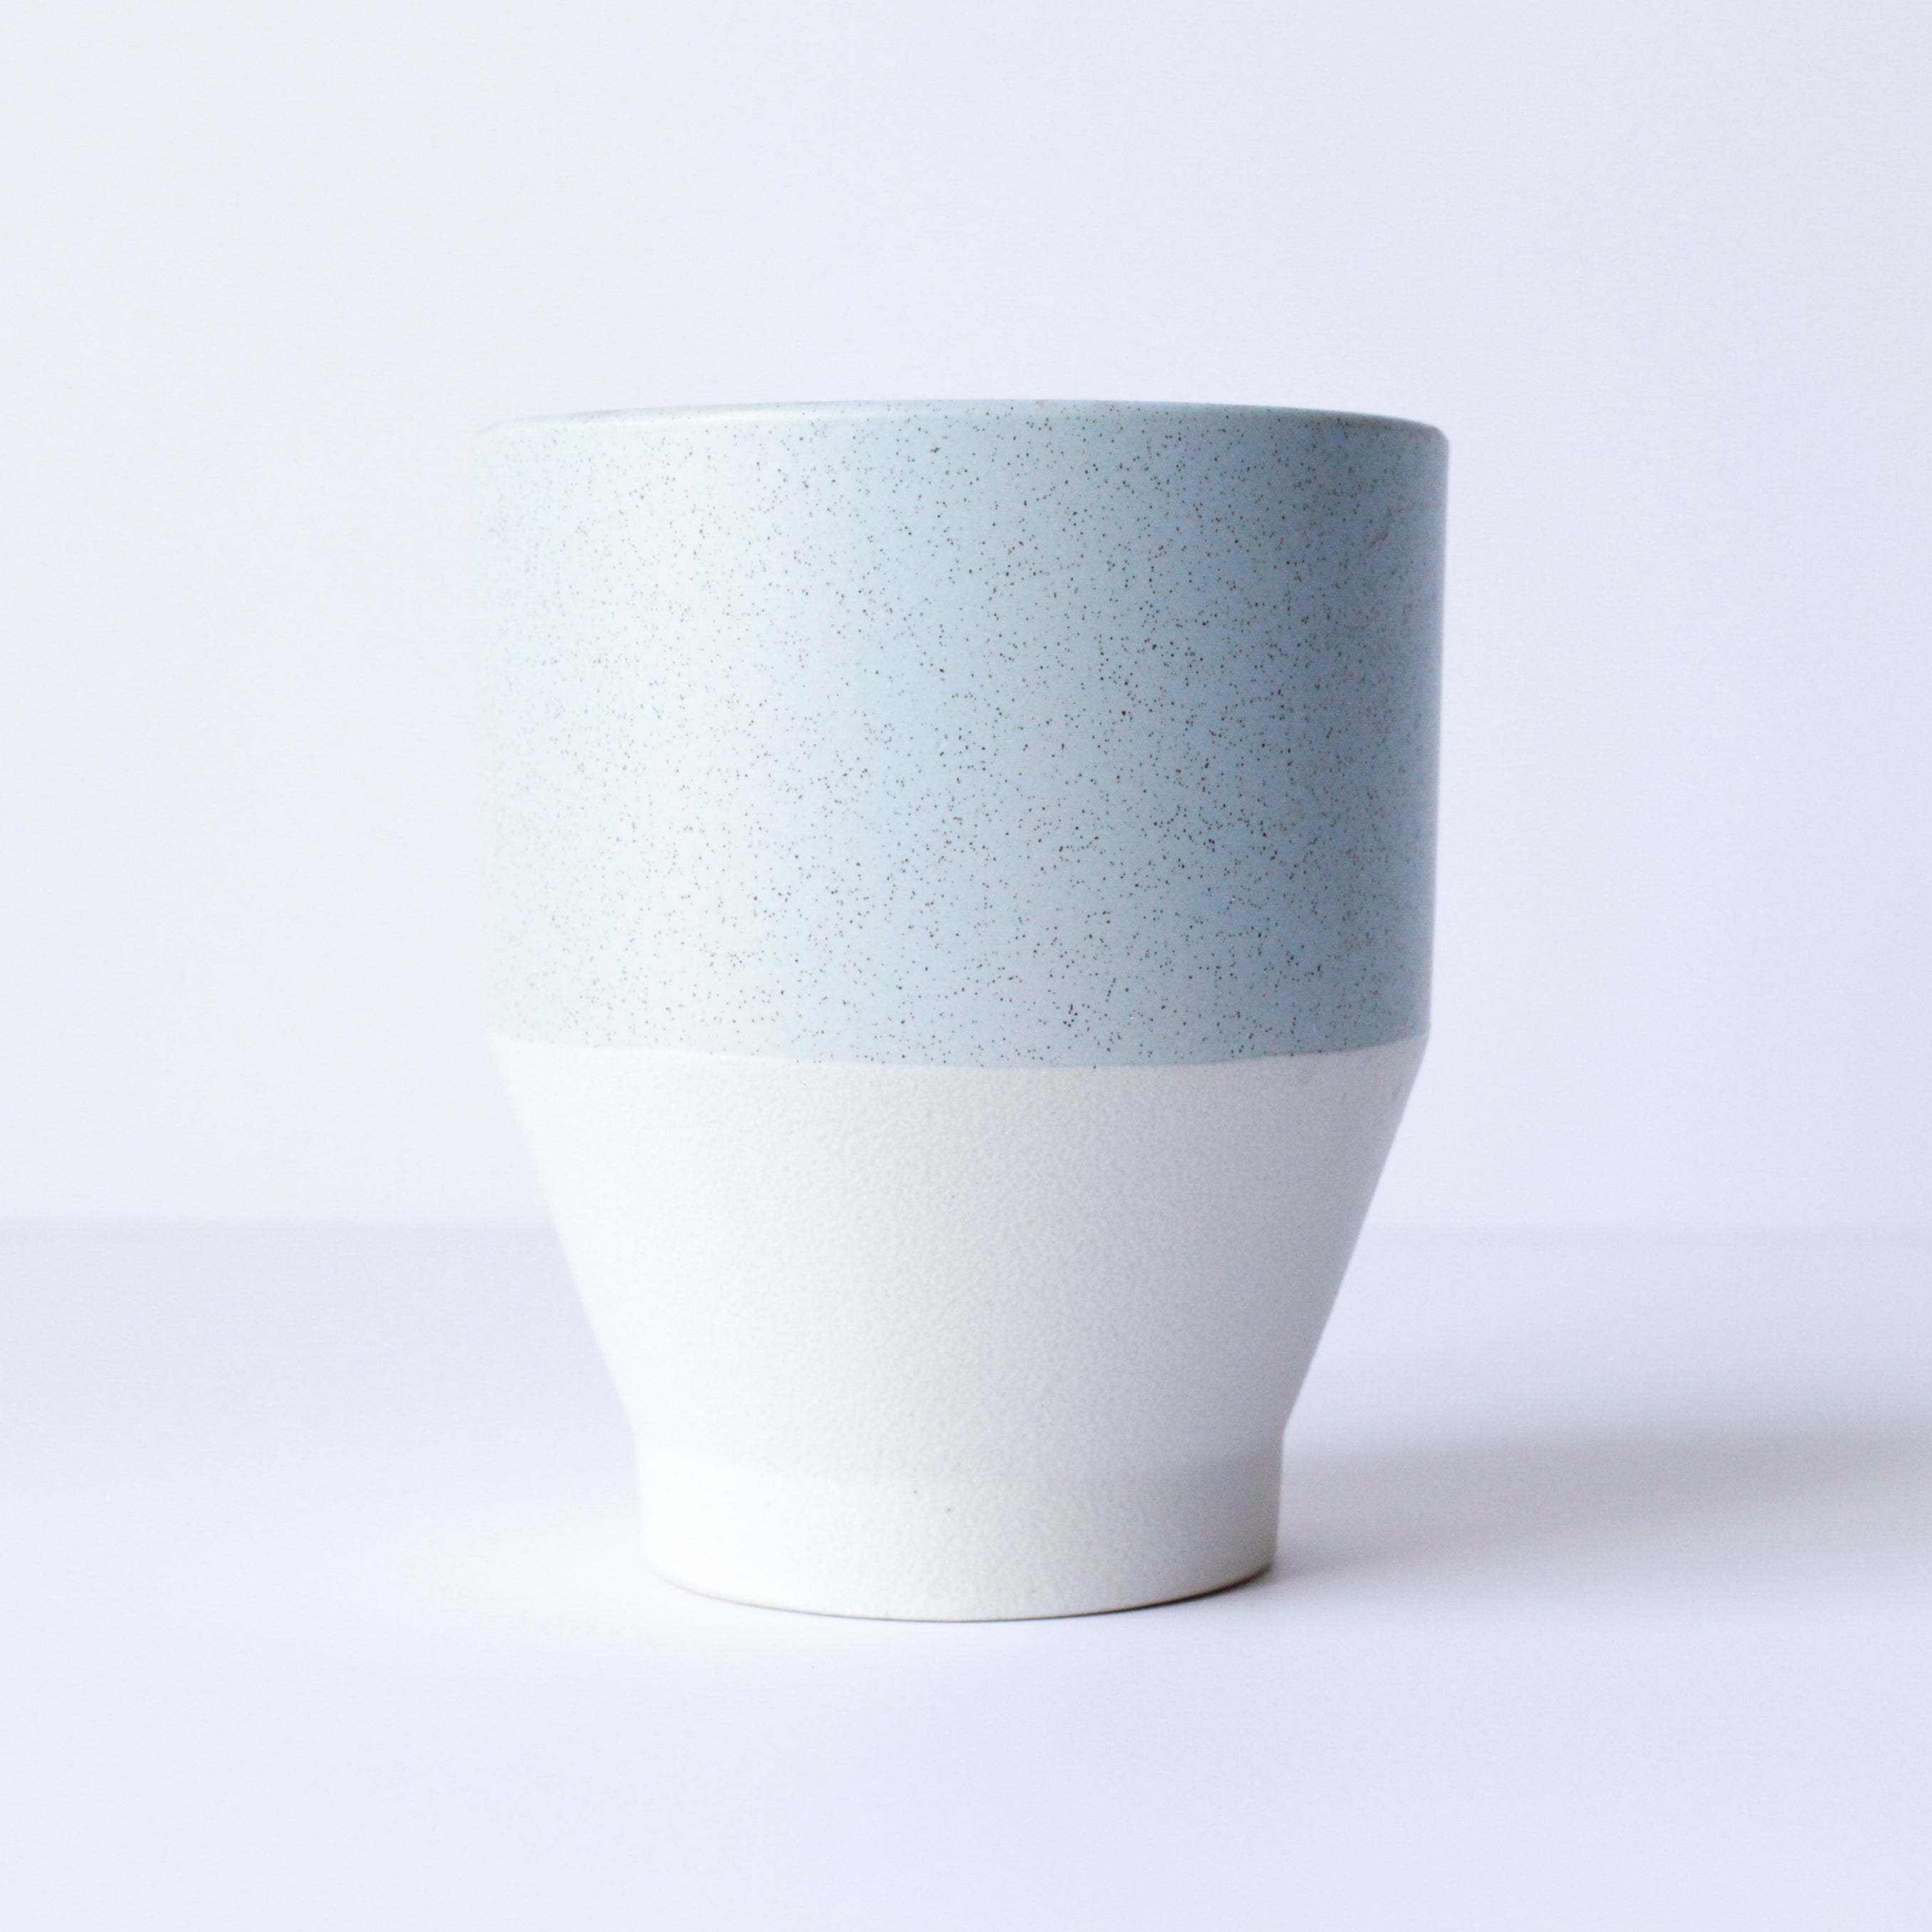 "4"" Pot in Speckled Light Blue & Textured Chalk"